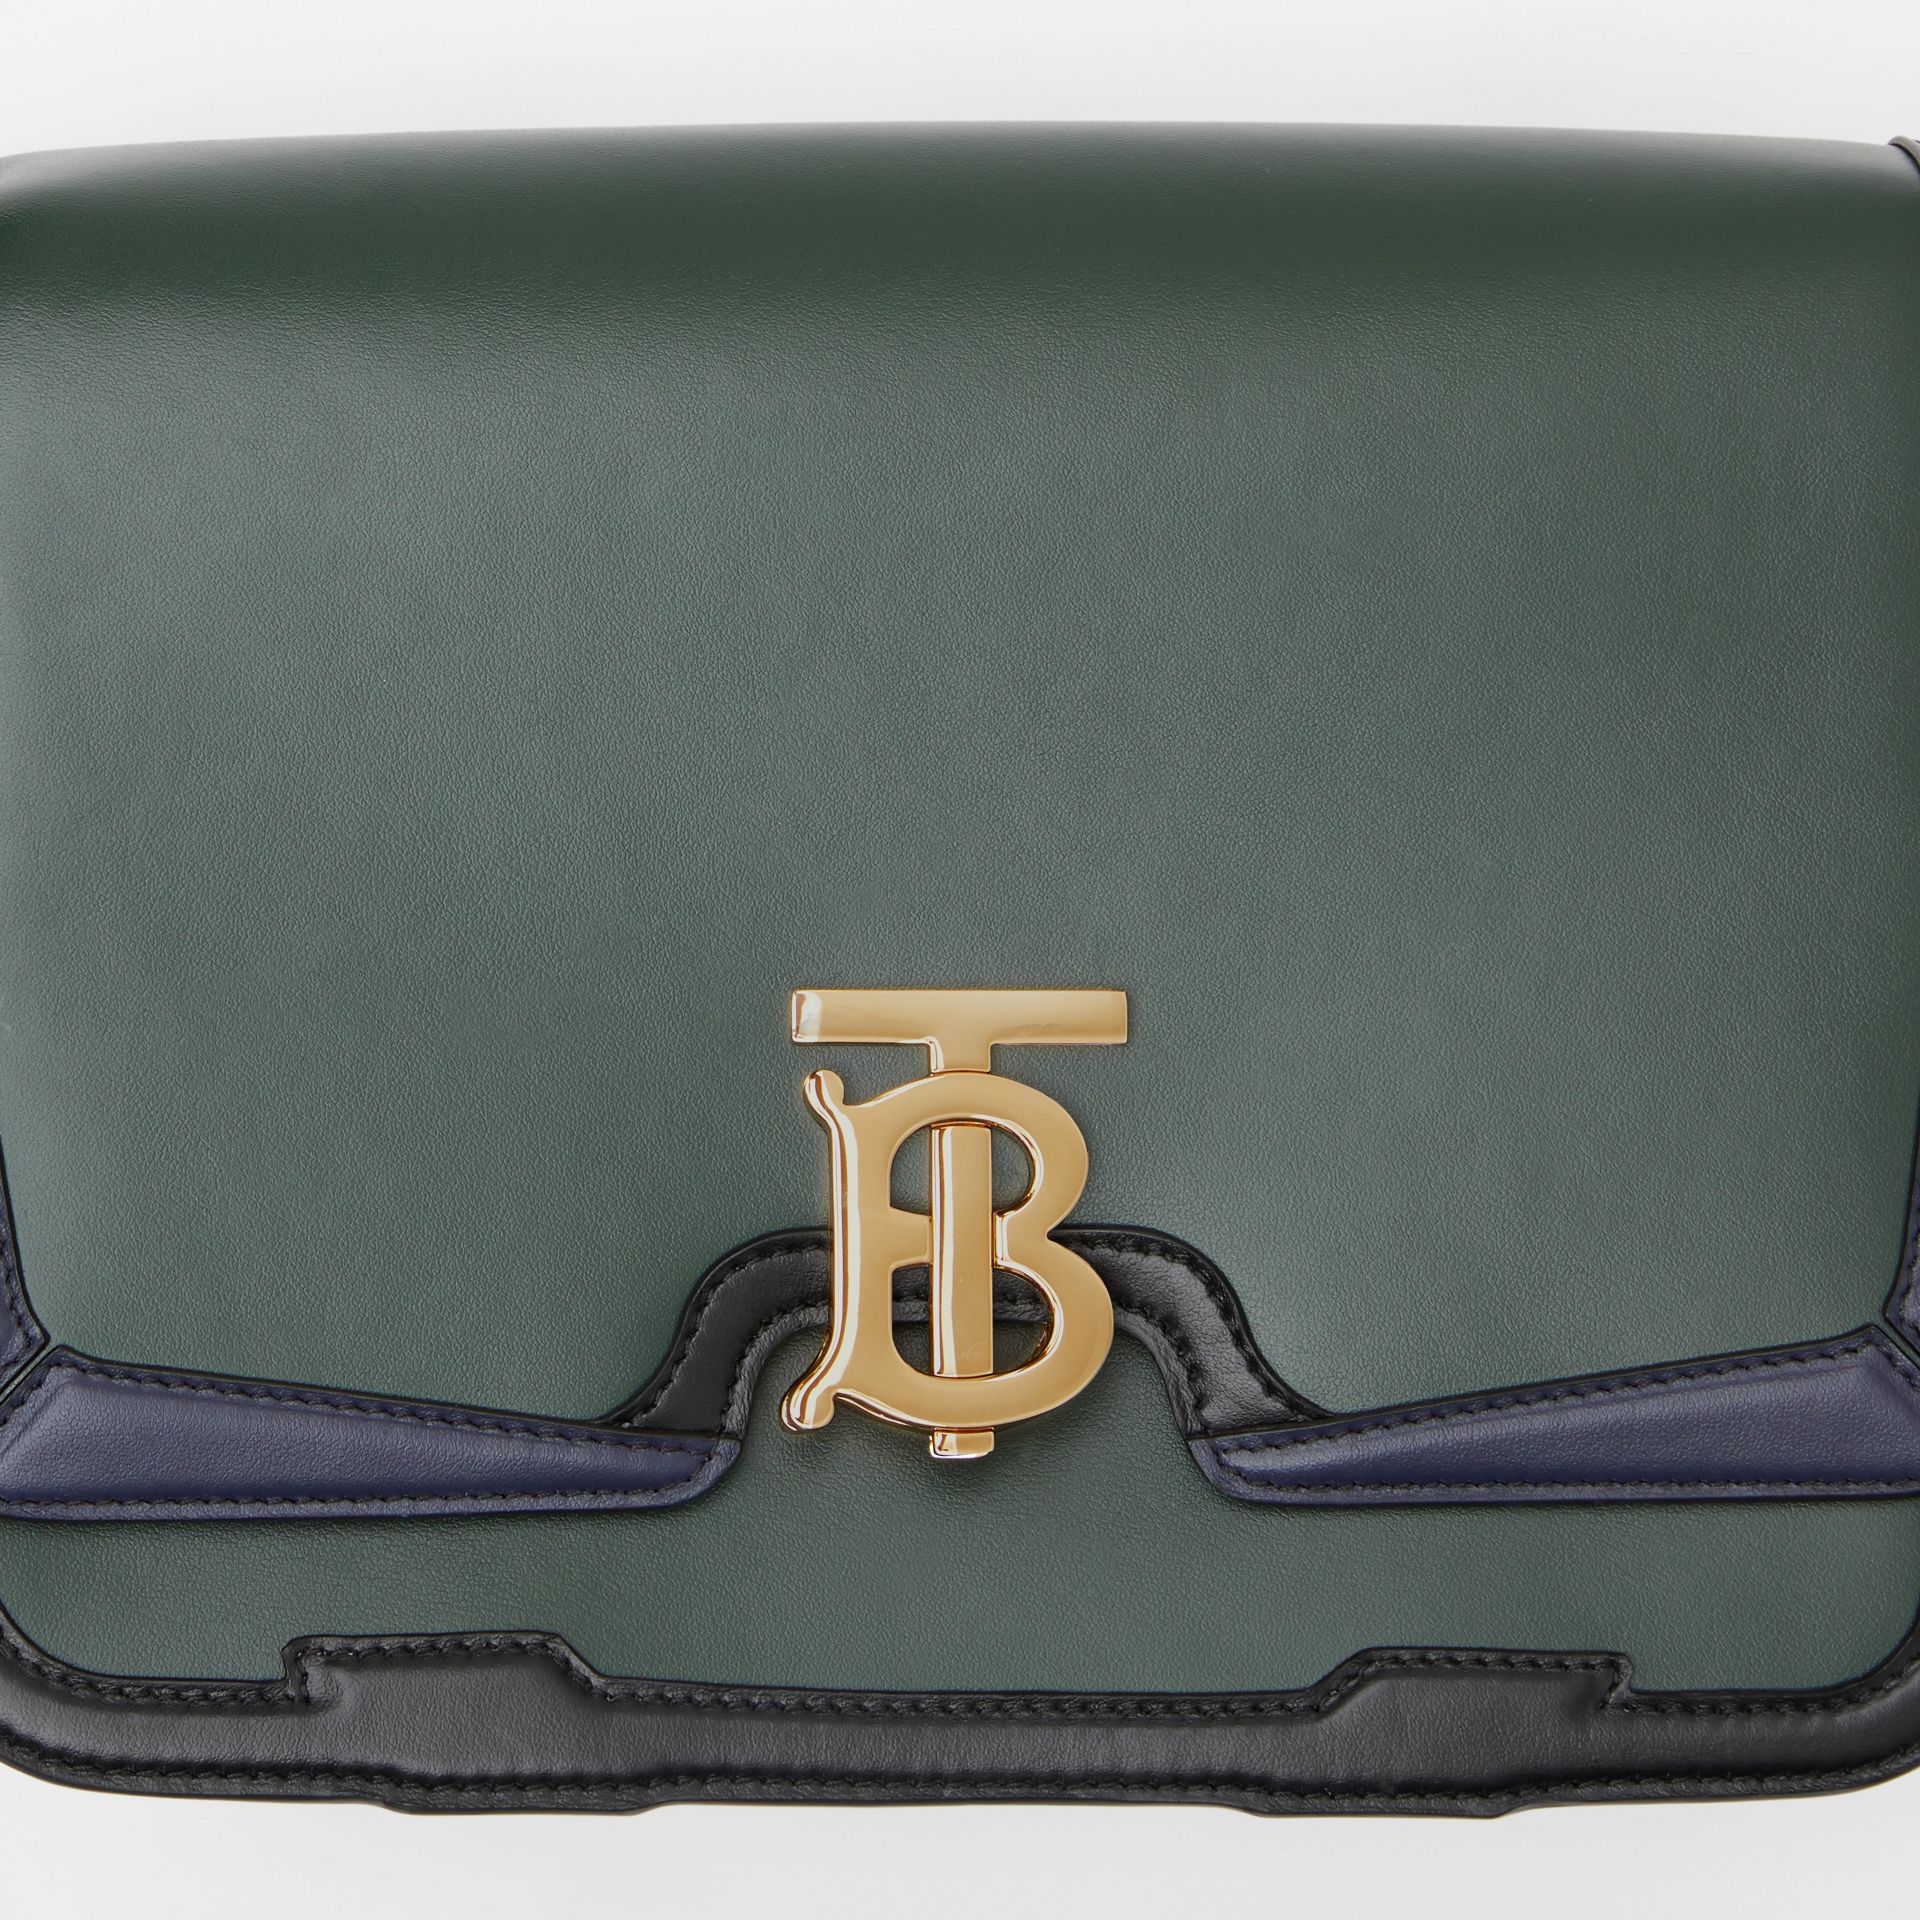 Medium Appliqué Leather TB Bag in Dark Pine Green - Women | Burberry United Kingdom - gallery image 1